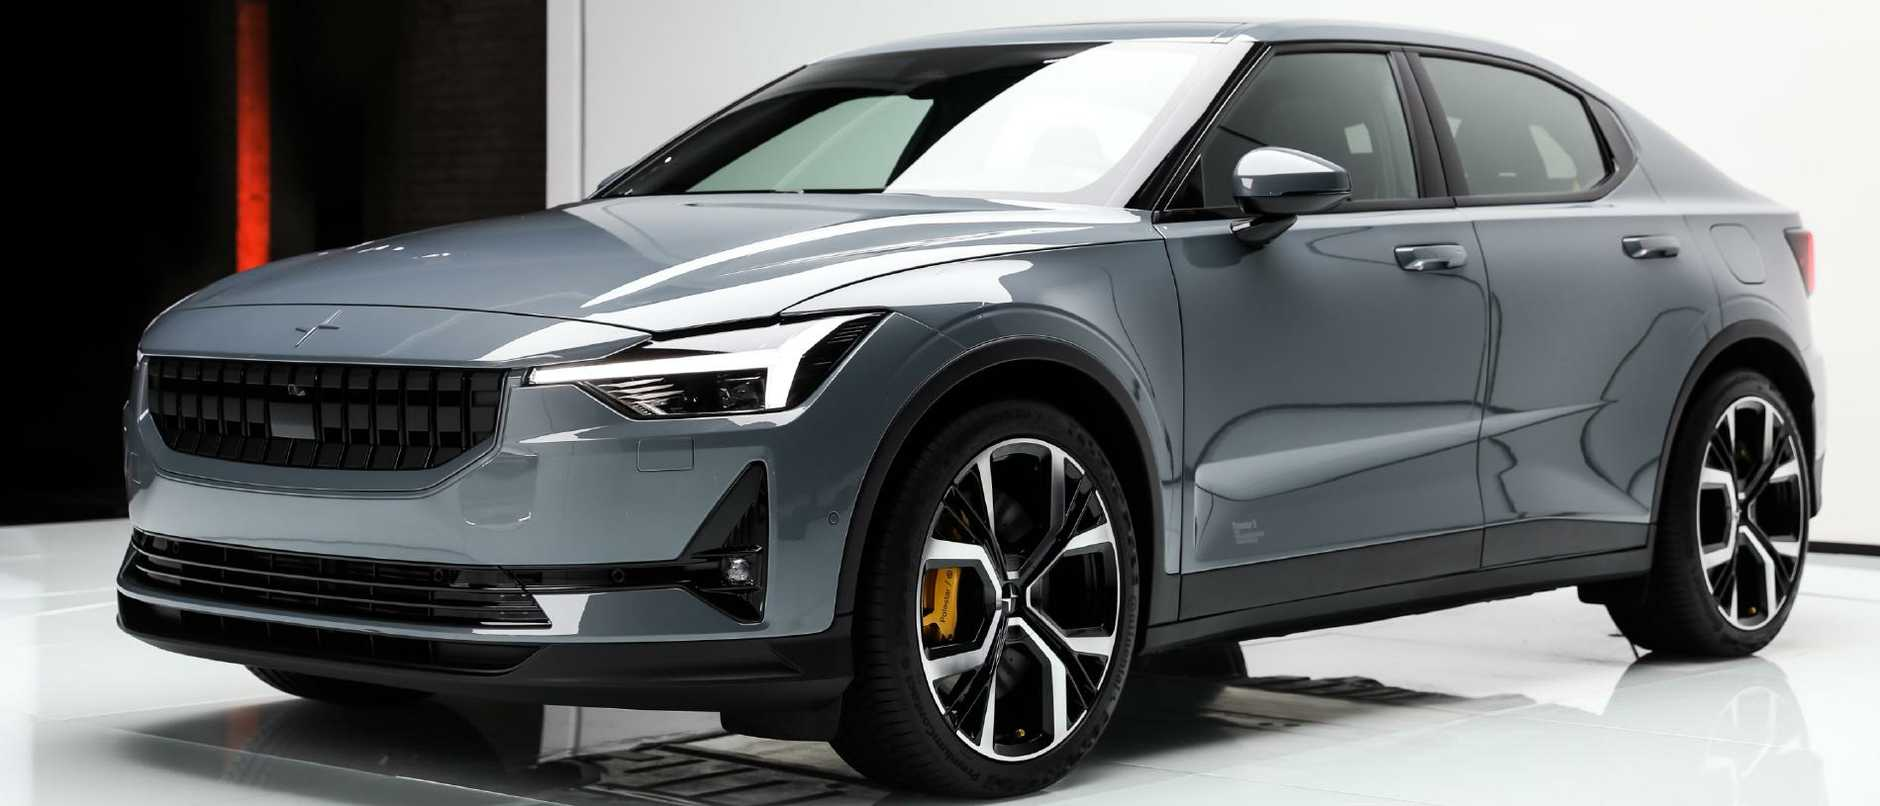 Made in China: Polestar is owned by Volvo and giant multinational Geely